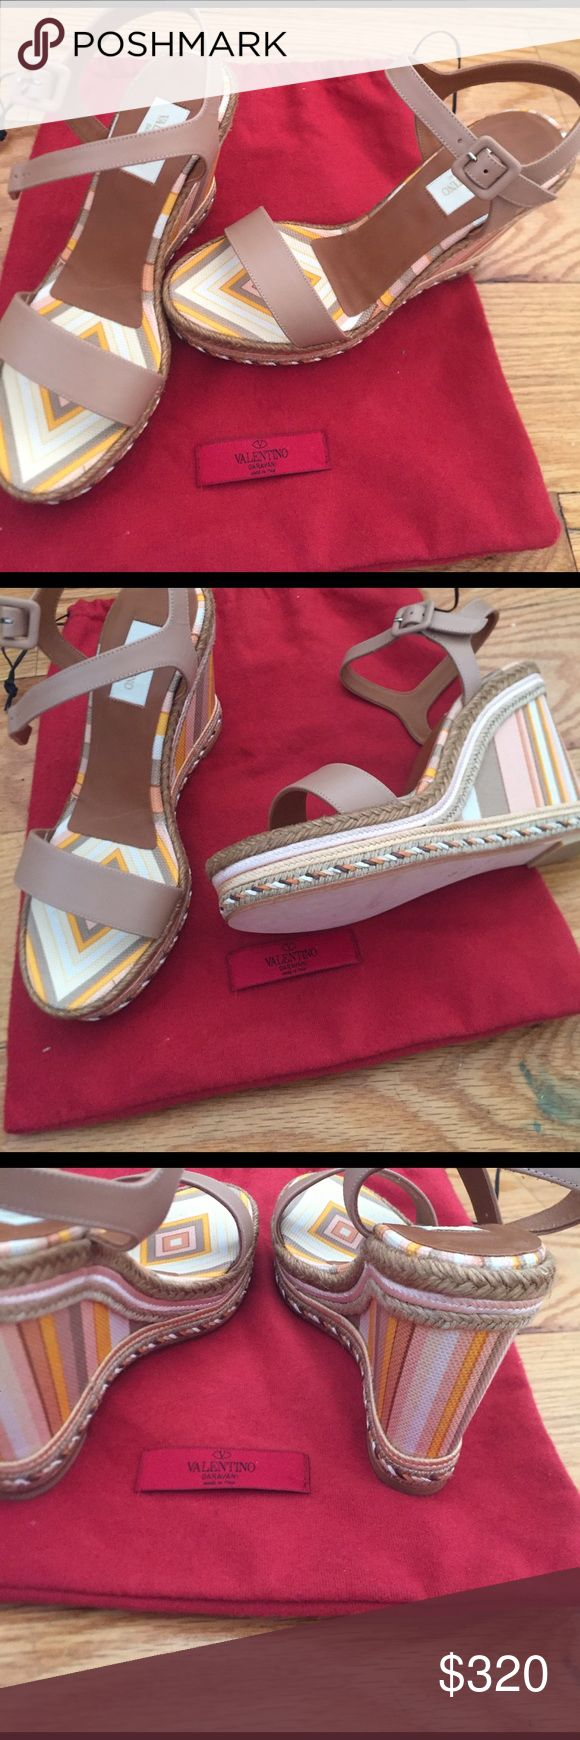 Authentic Valentino wedge heel sandals Tan leather wedge sandals. New never worn. No box or dust bag. Valentino Shoes Wedges